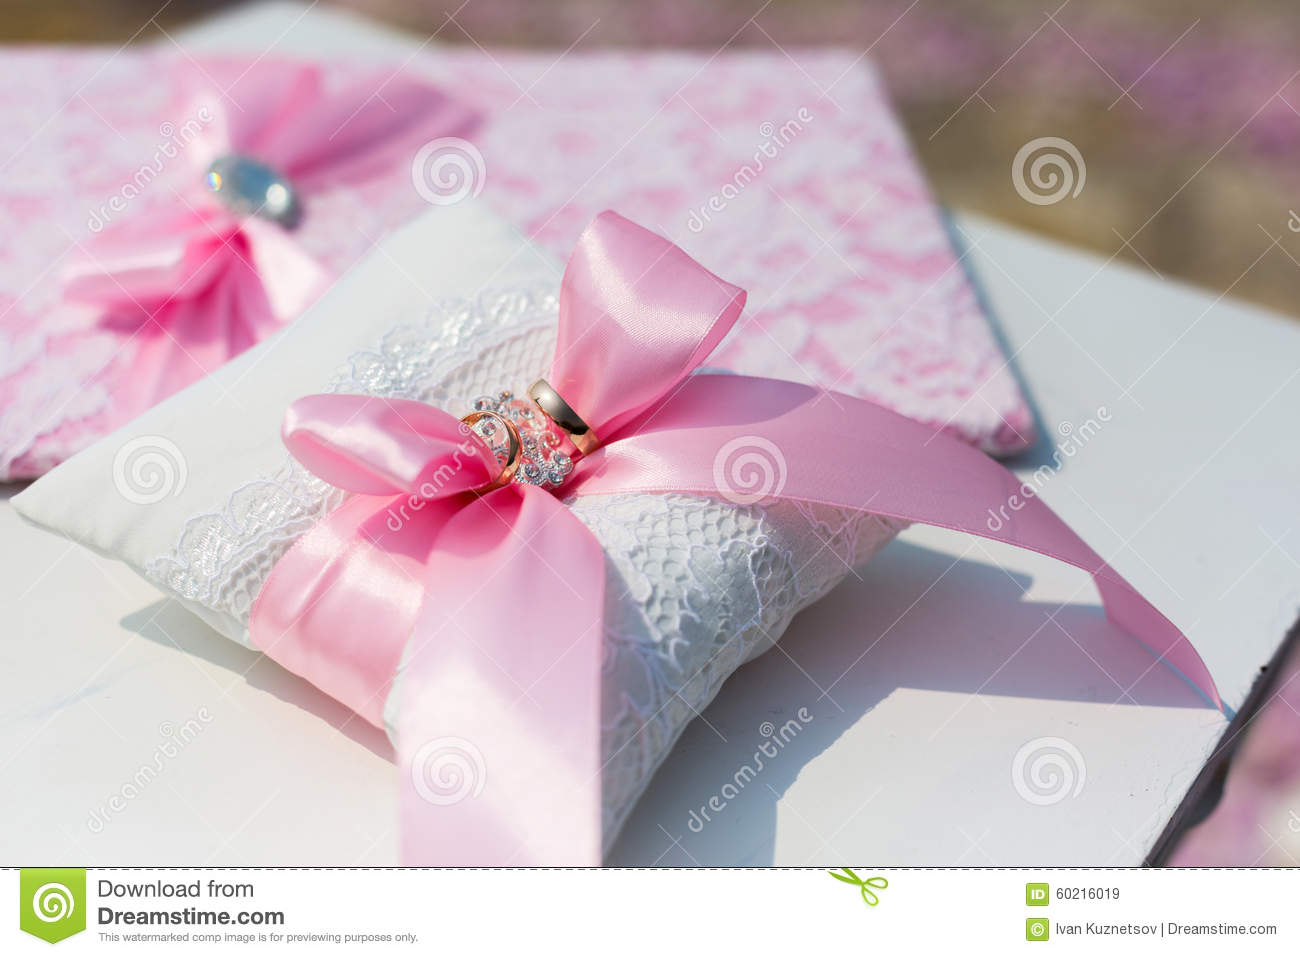 Wedding Folder And Pillow With Rings Stock Image - Image of ...